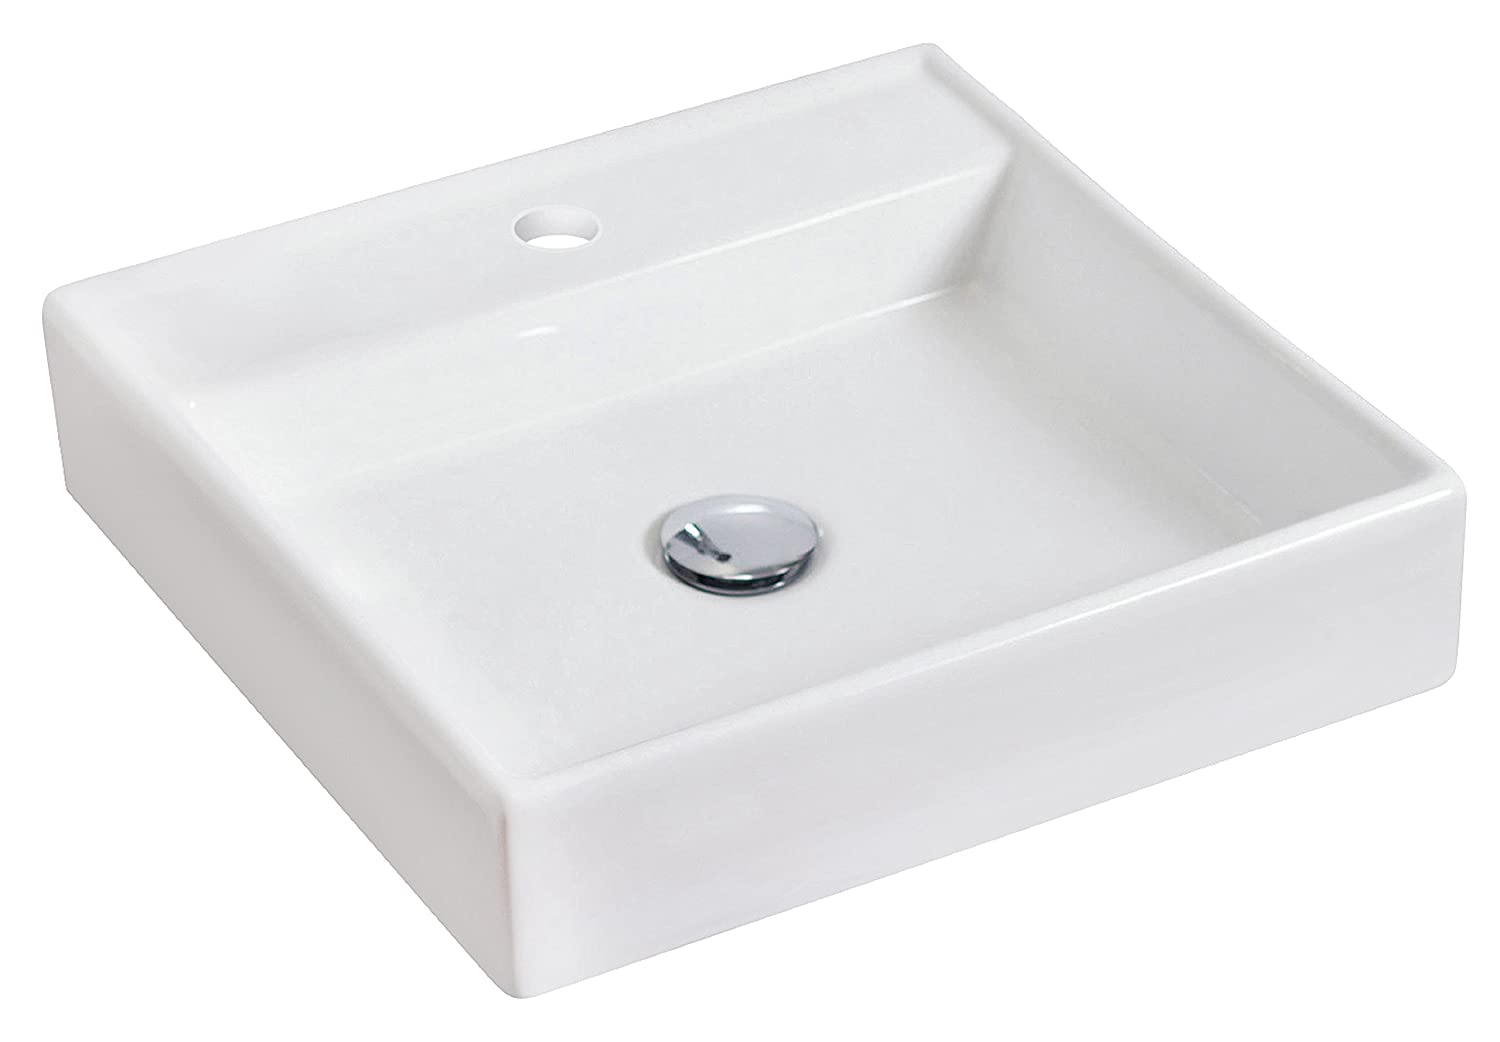 American Imaginations Above Counter Rectangle Vessel For Deck Mount Faucet, 19-in. W x 14-in.D, White AI-12-595